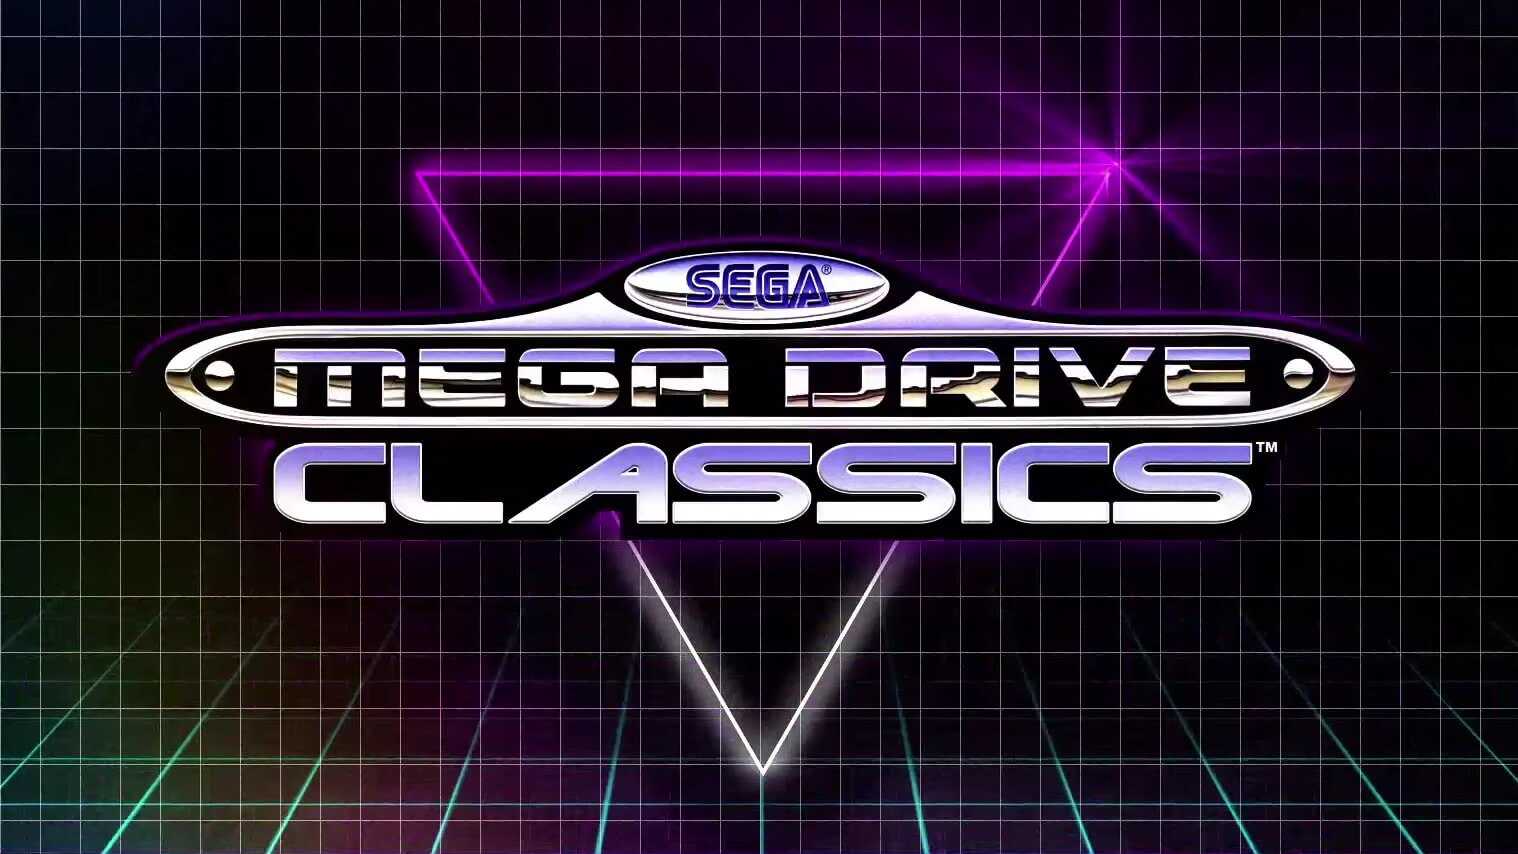 SEGA Mega Drive Classics Hub adds Steam Workshop support to Mega Drive games